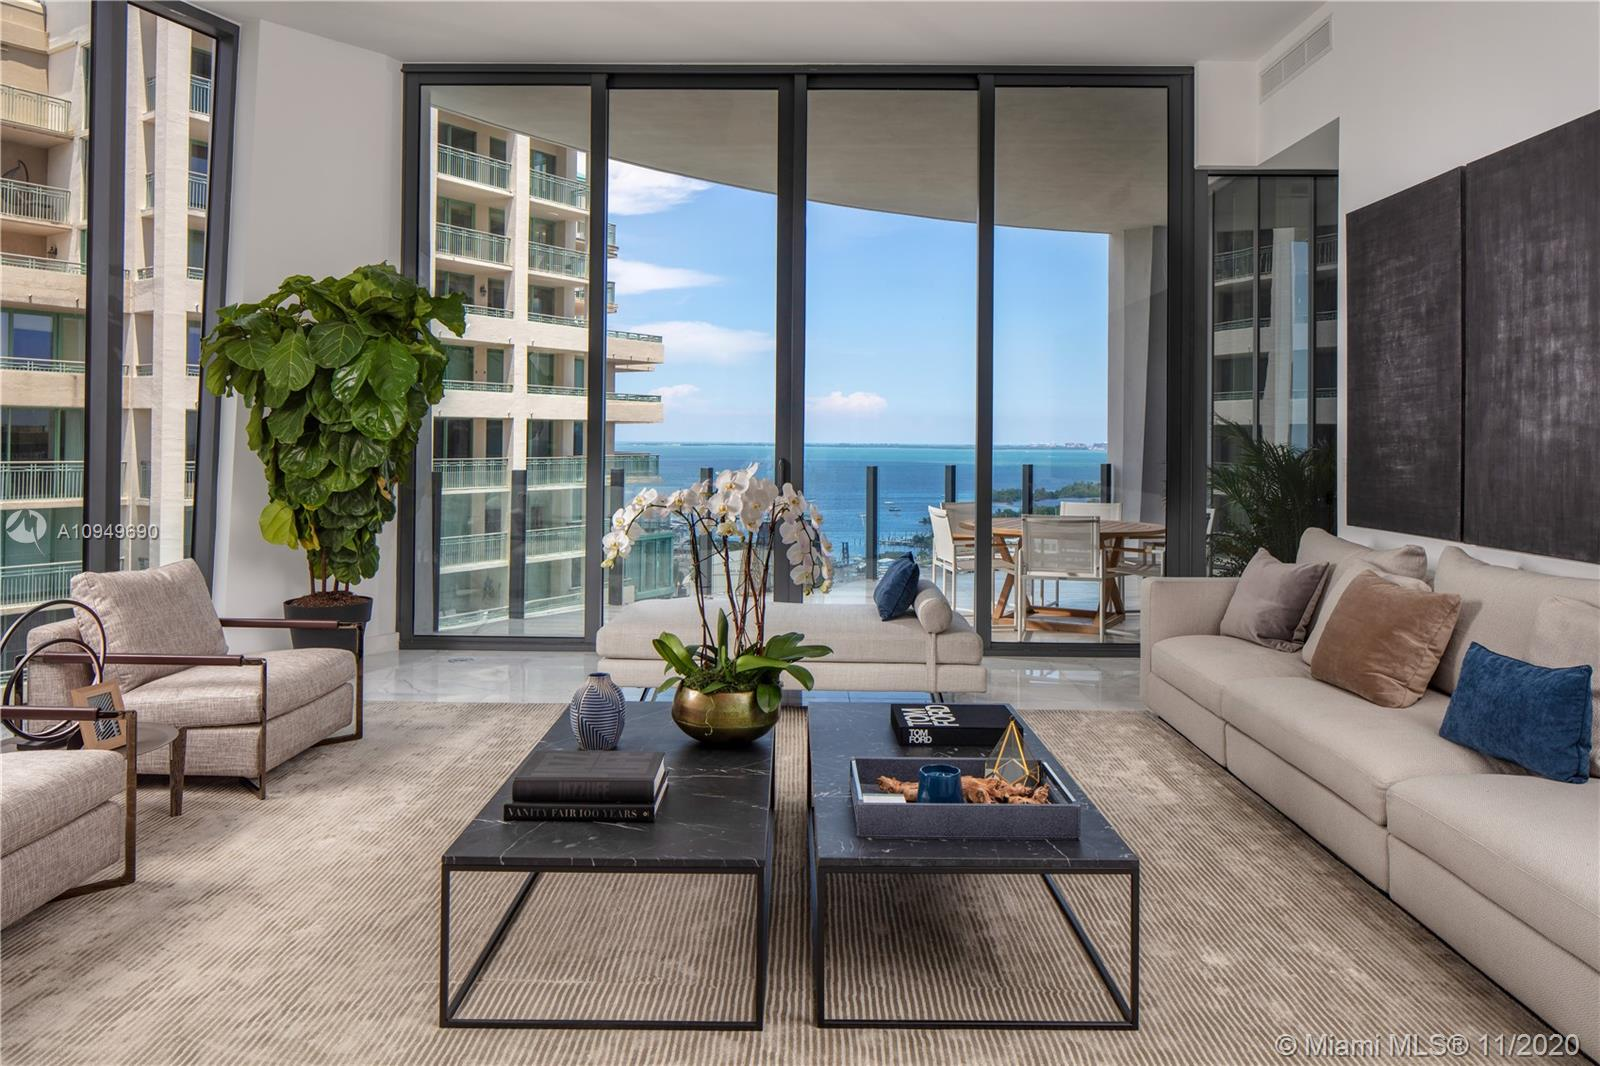 If possible please provide 48h notice for showings. New window treatments installed! Greeted by remarkable panoramic views of Biscayne Bay and rare 12-ft ceilings, unit 16D in Tower Two of the exclusive Park Grove Residences, is where your home search ends. This pristine unit, one of only 4 per floor, will check off everything on your list. With a layout of nearly 3,000 sq ft, this flawless 3 bedroom, 4 bathroom home, boasts Paonazzo marble counters, Italkraft cabinetry, Wolf appliances and the highest level of finishes throughout. Experience resort-style living with 80,000 sq ft of lavish amenities and own a piece of architecture history, created by renowned architect Rem Koolhaas and acclaimed landscape designer, Enzo Enea. See broker remarks for showing instructions.